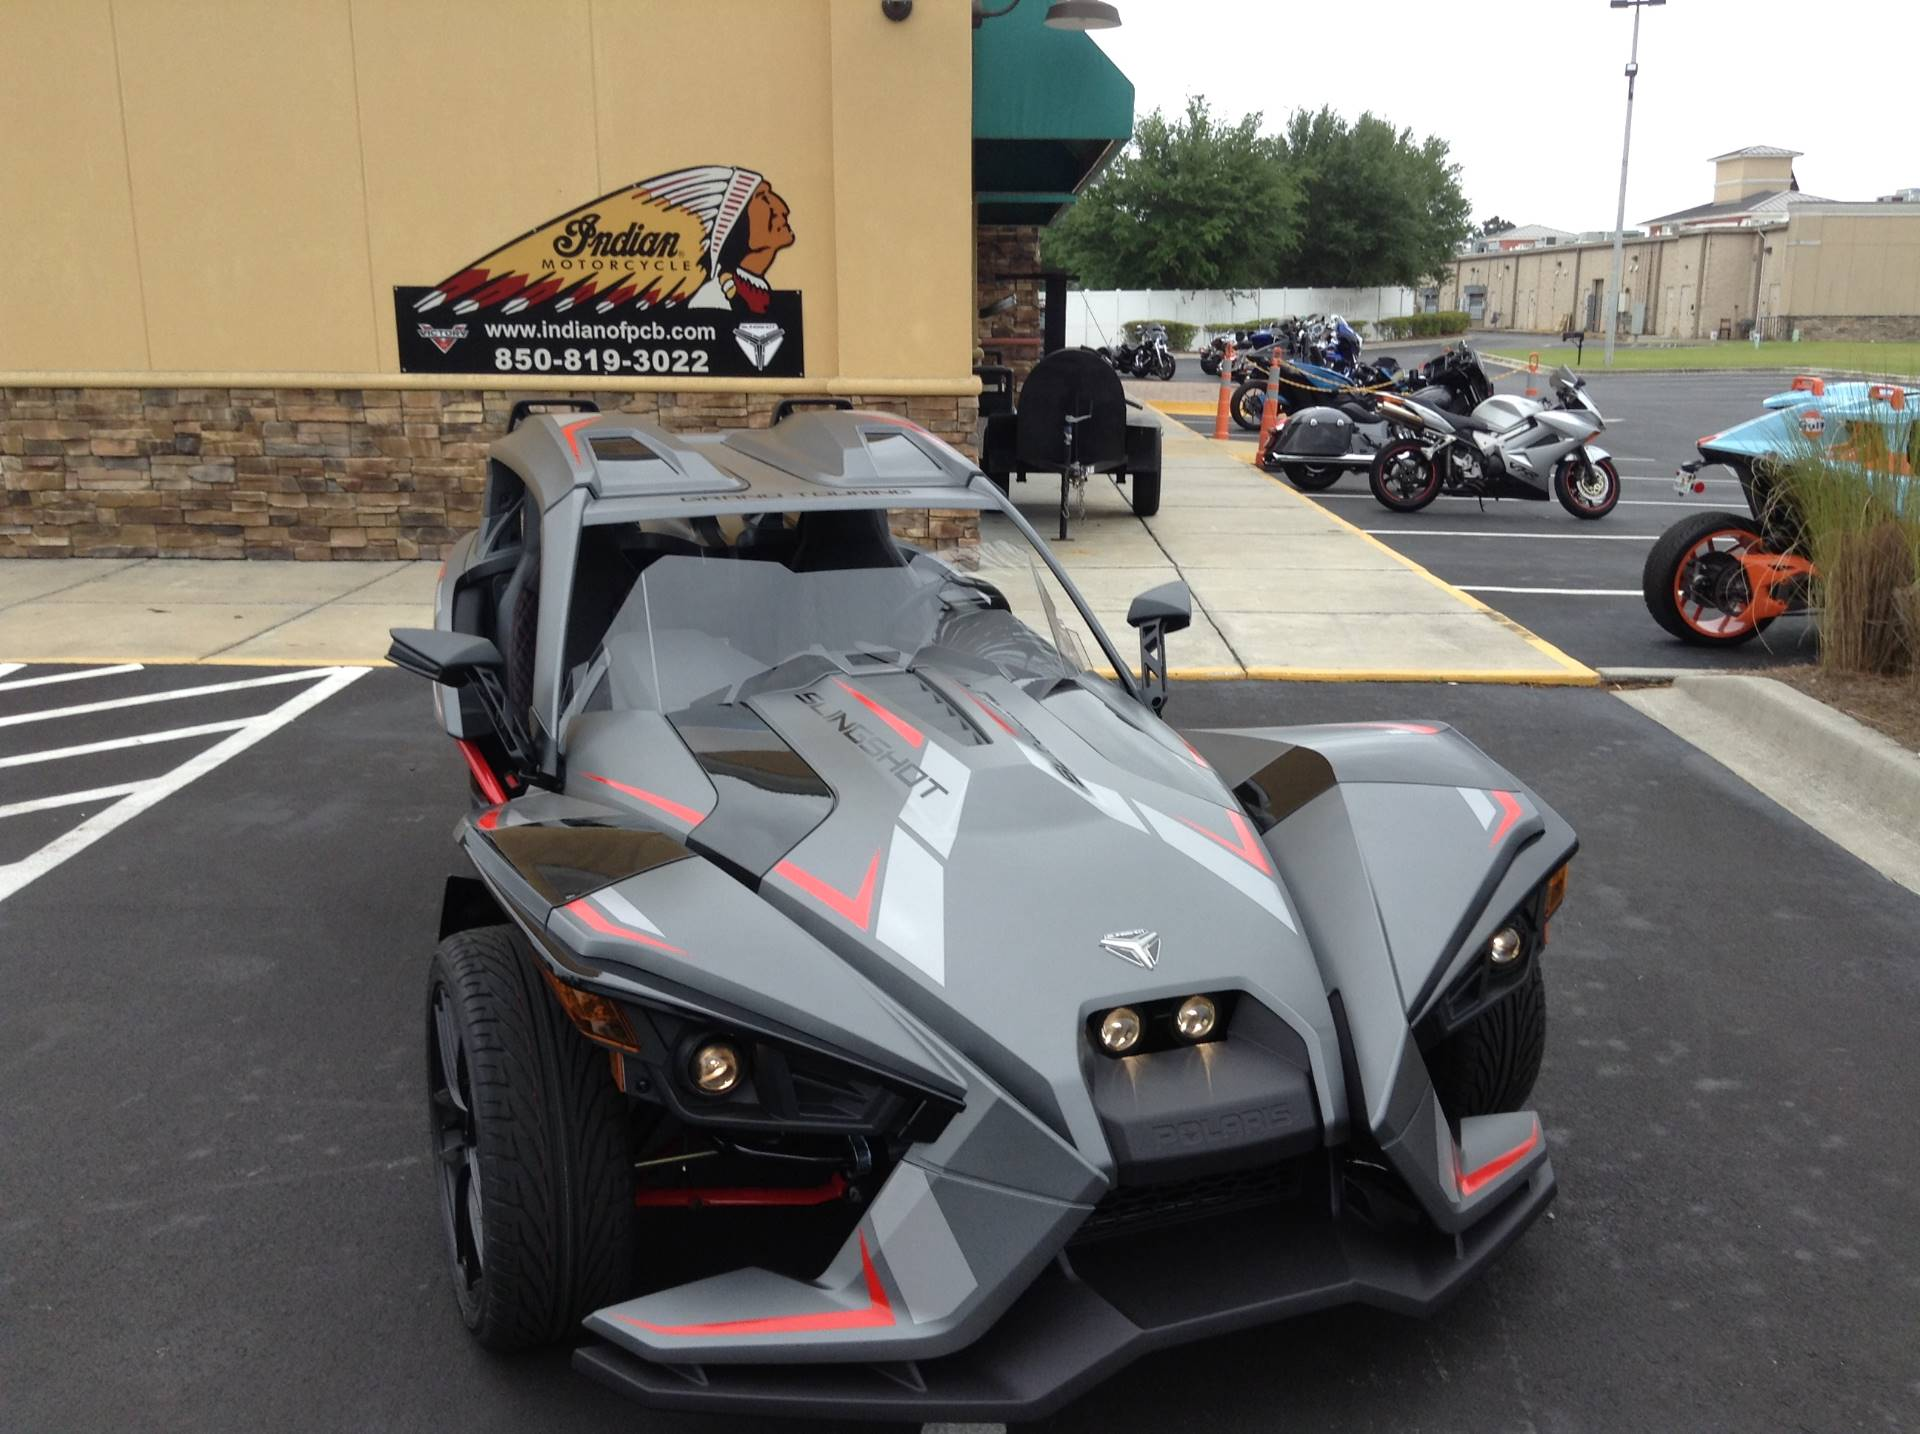 2018 Polaris Slingshot Grand Touring Le In Panama City Beach Florida